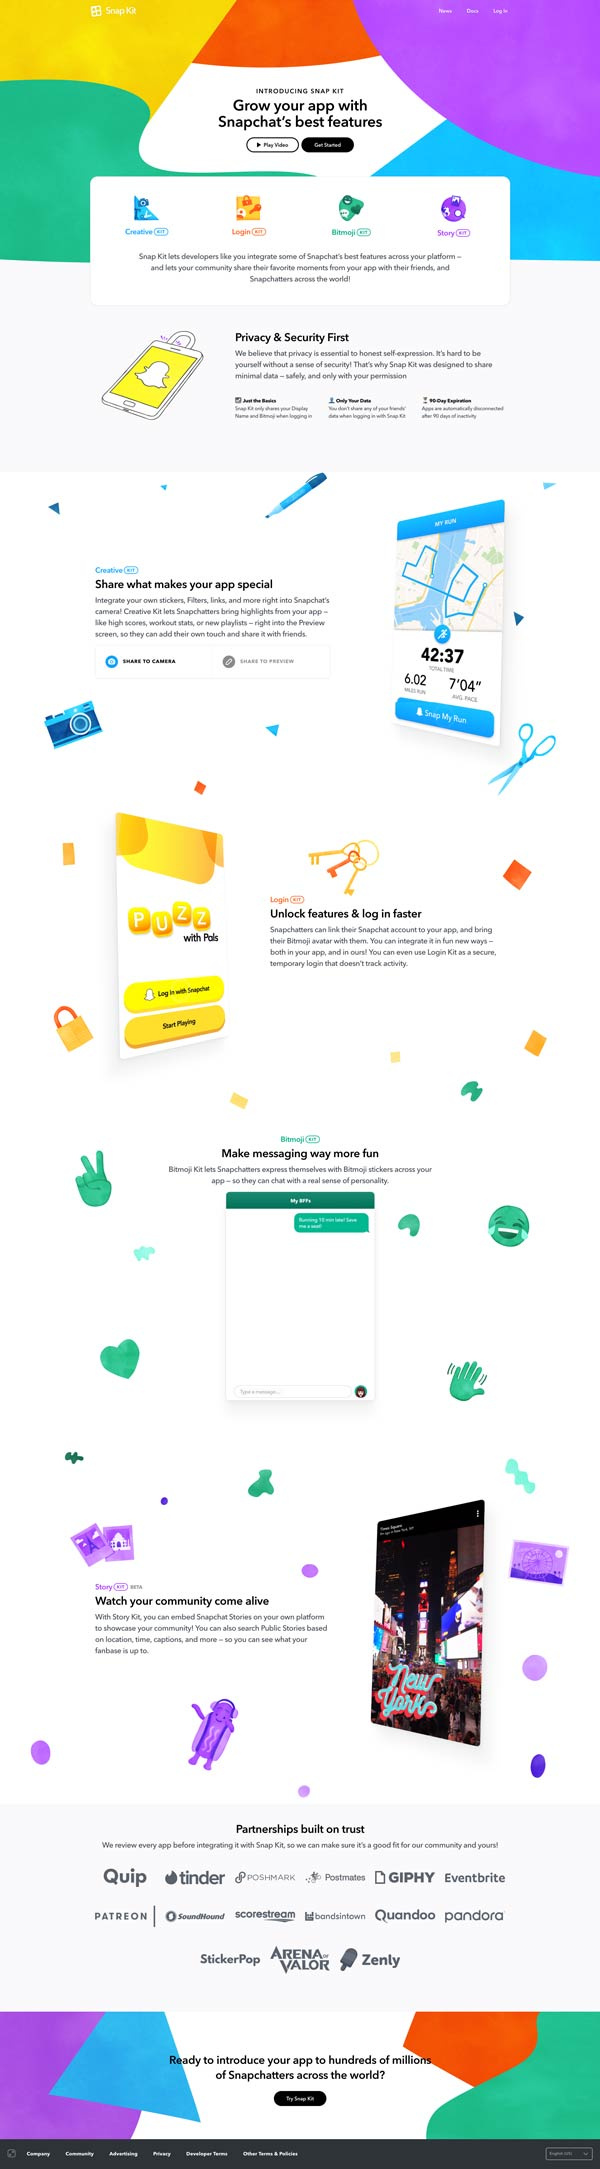 landing-page-examples-snapchat